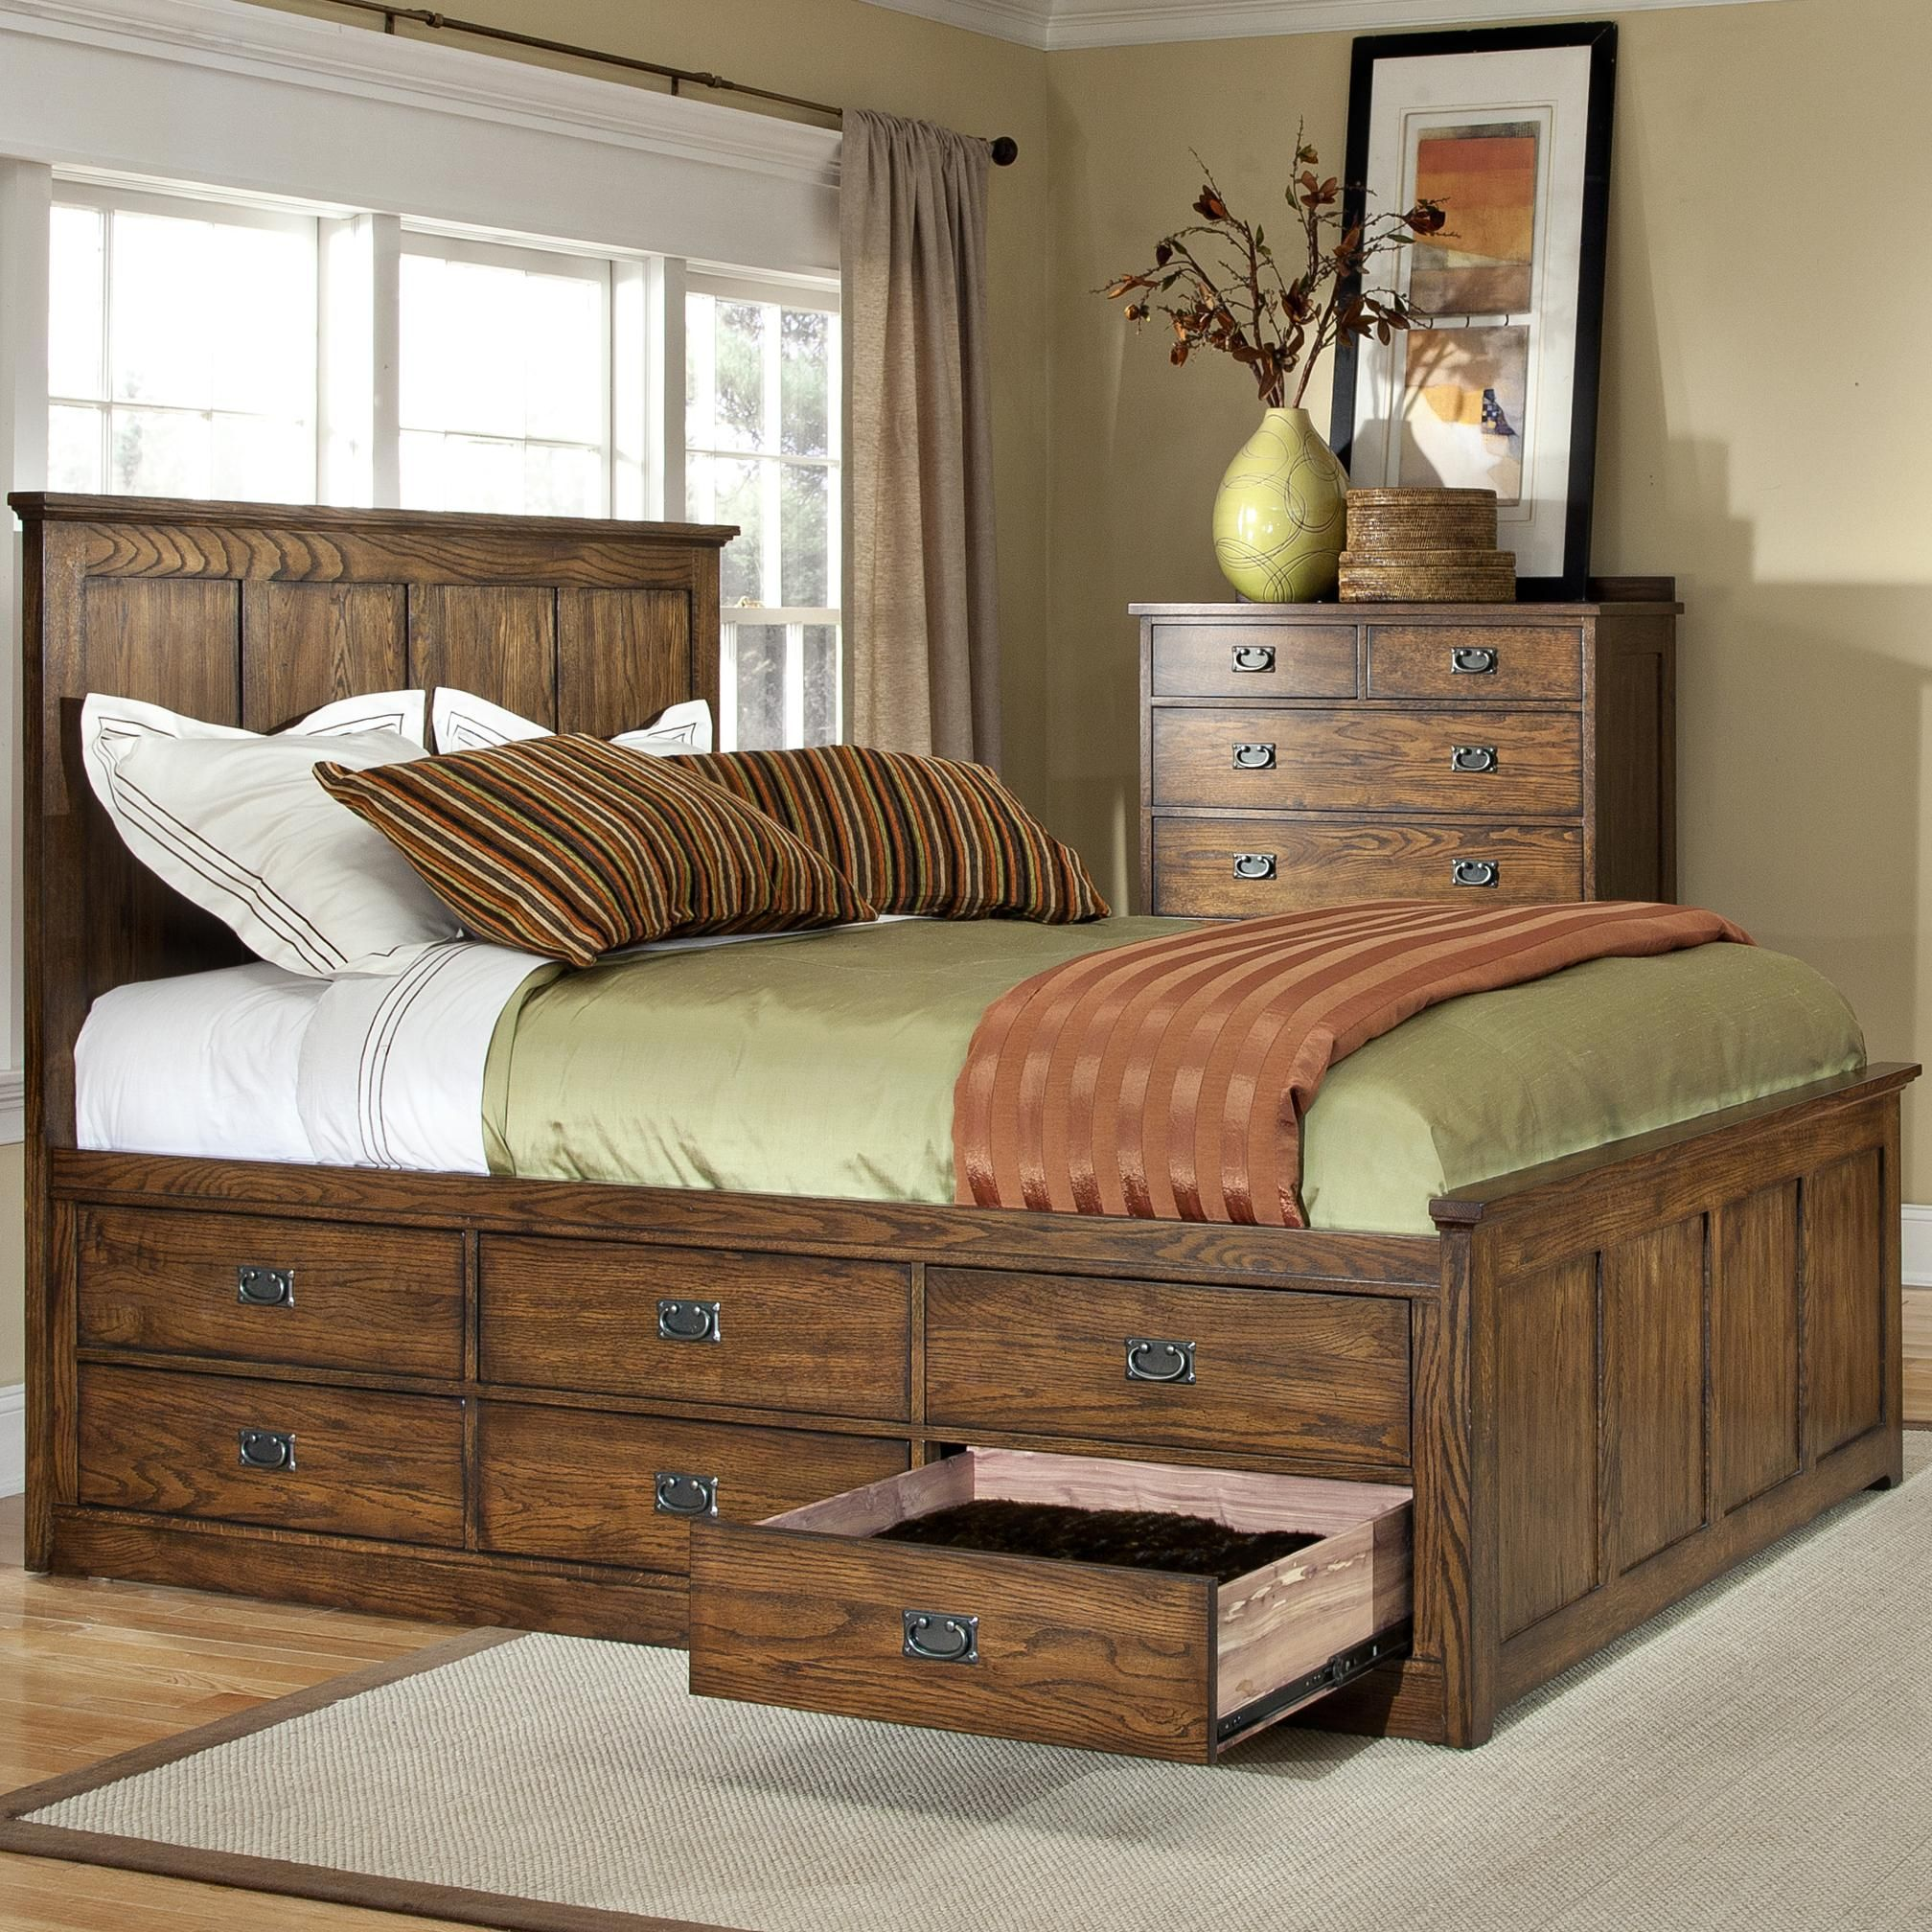 celina rail cal floating king california bed malibu